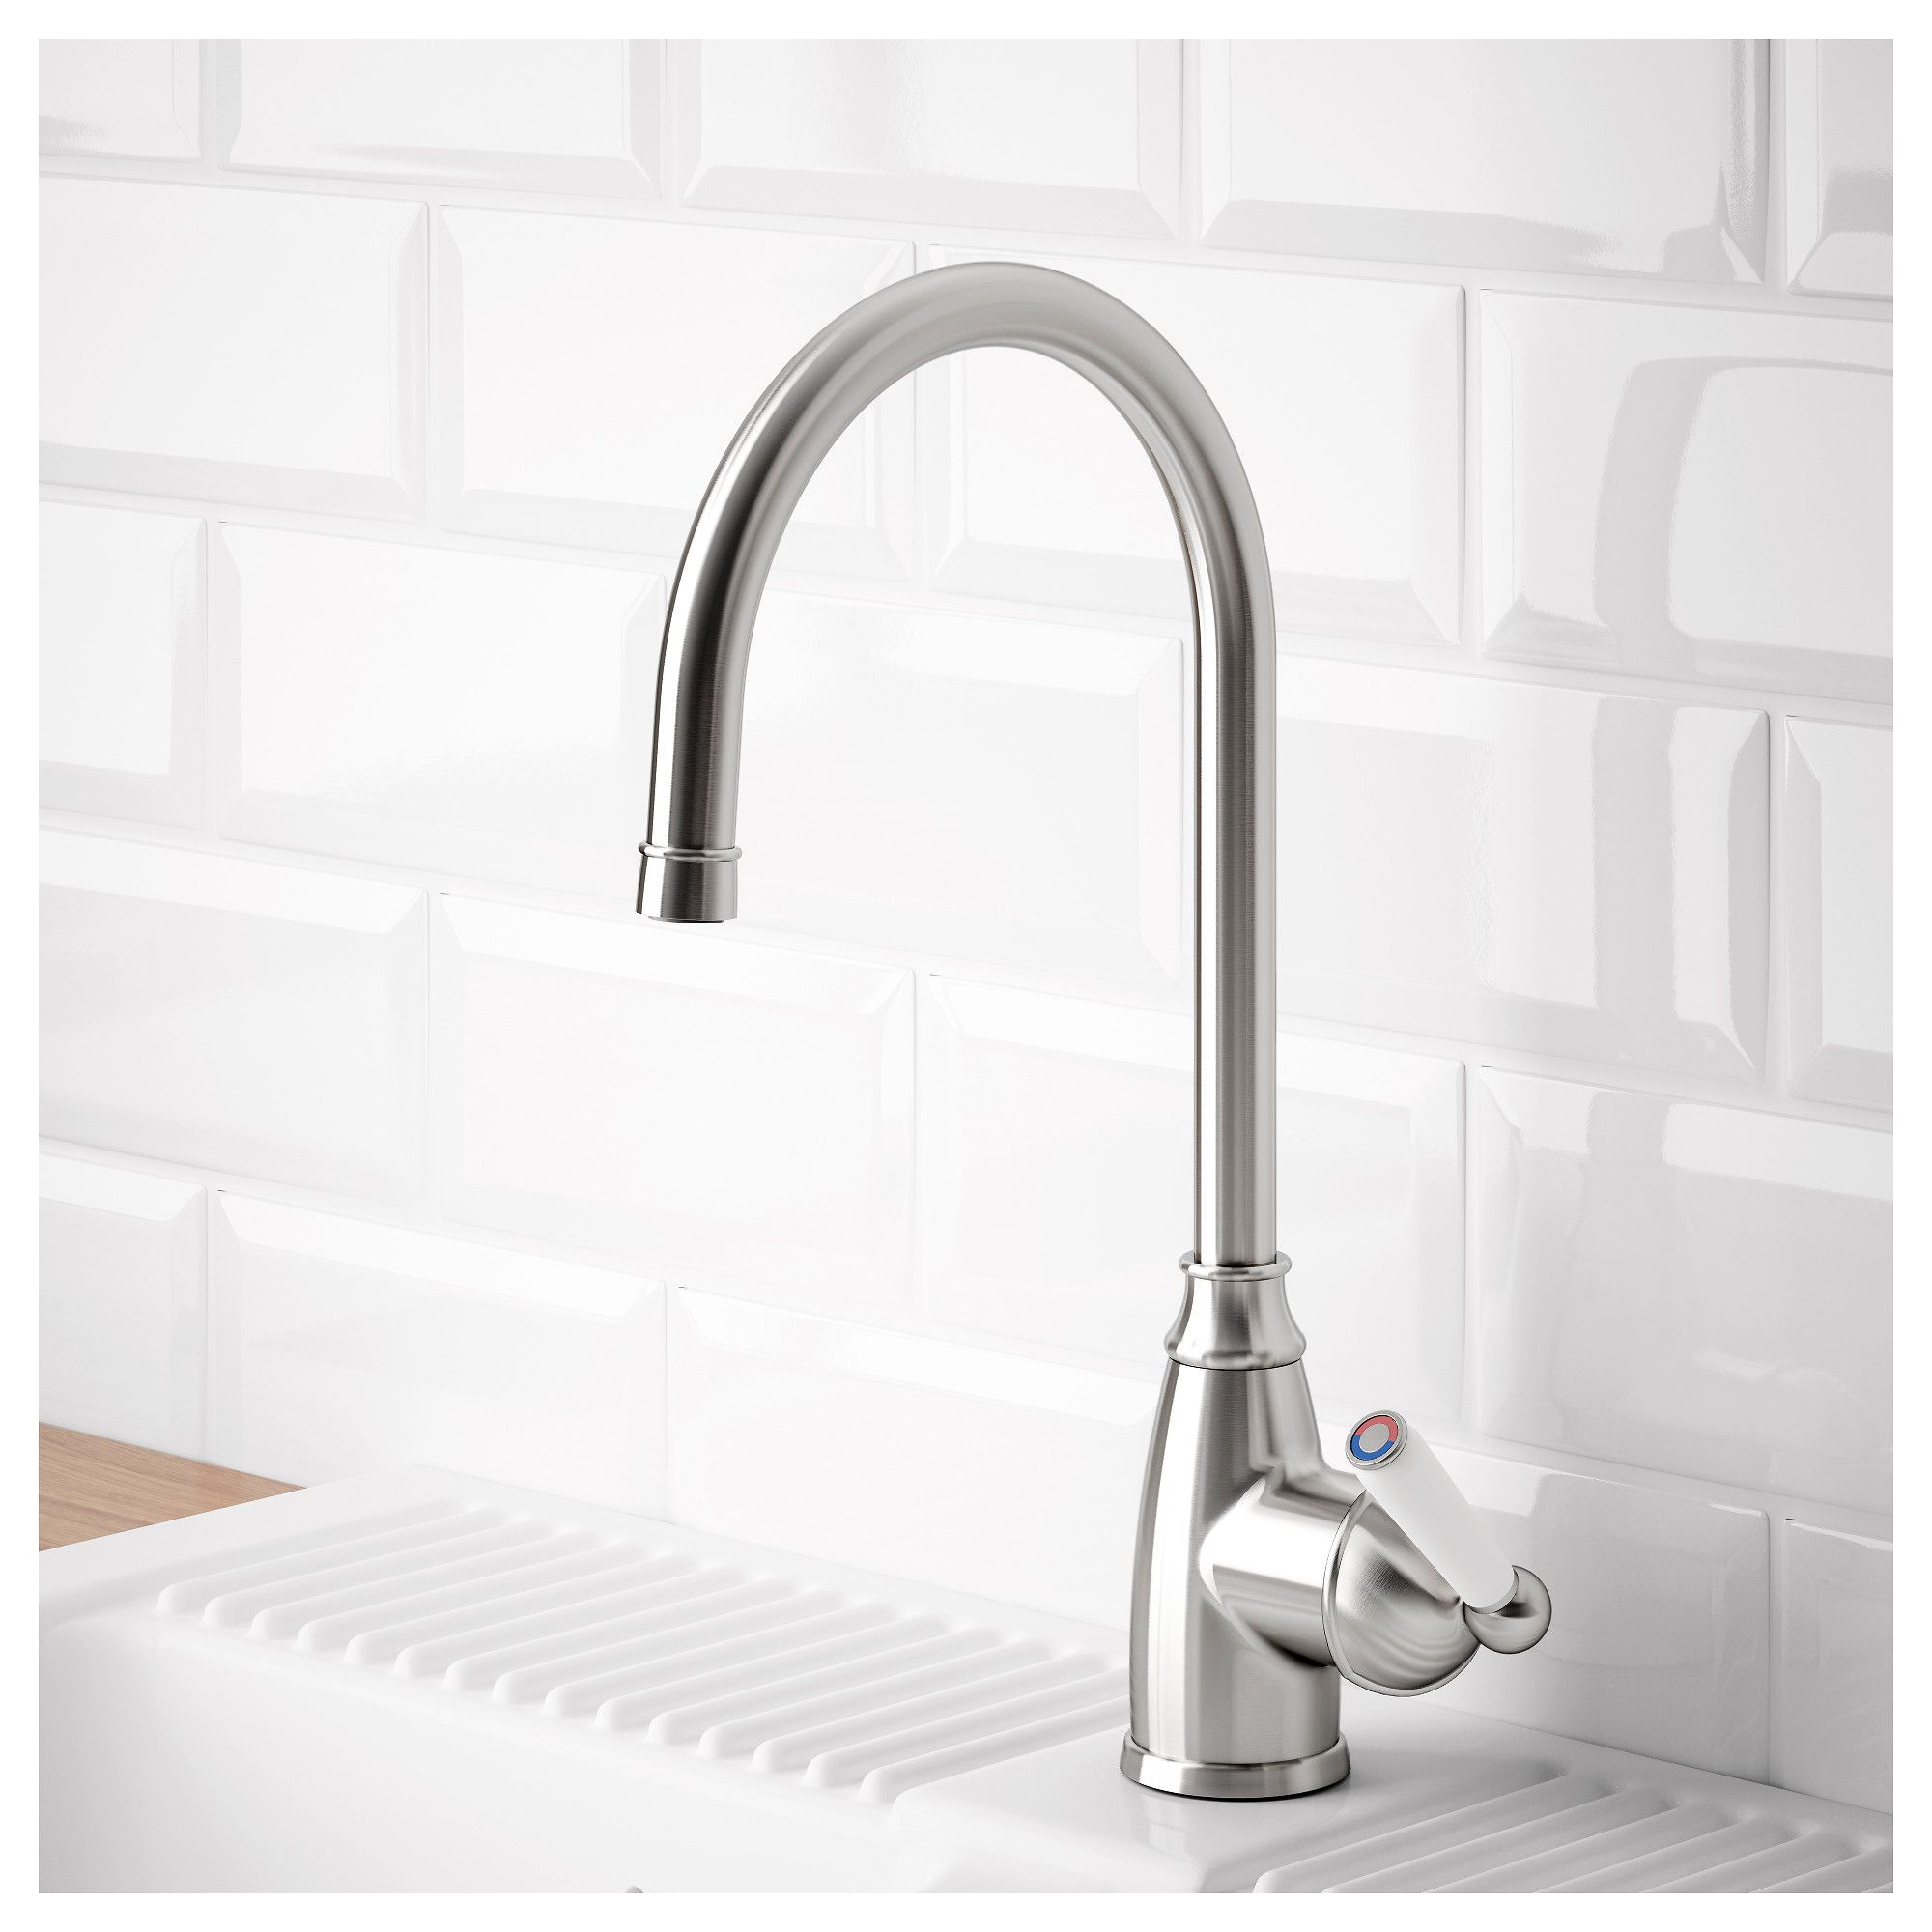 Ikea Küchenarmatur Ikea Elverdam Kitchen Faucet Stainless Steel Color